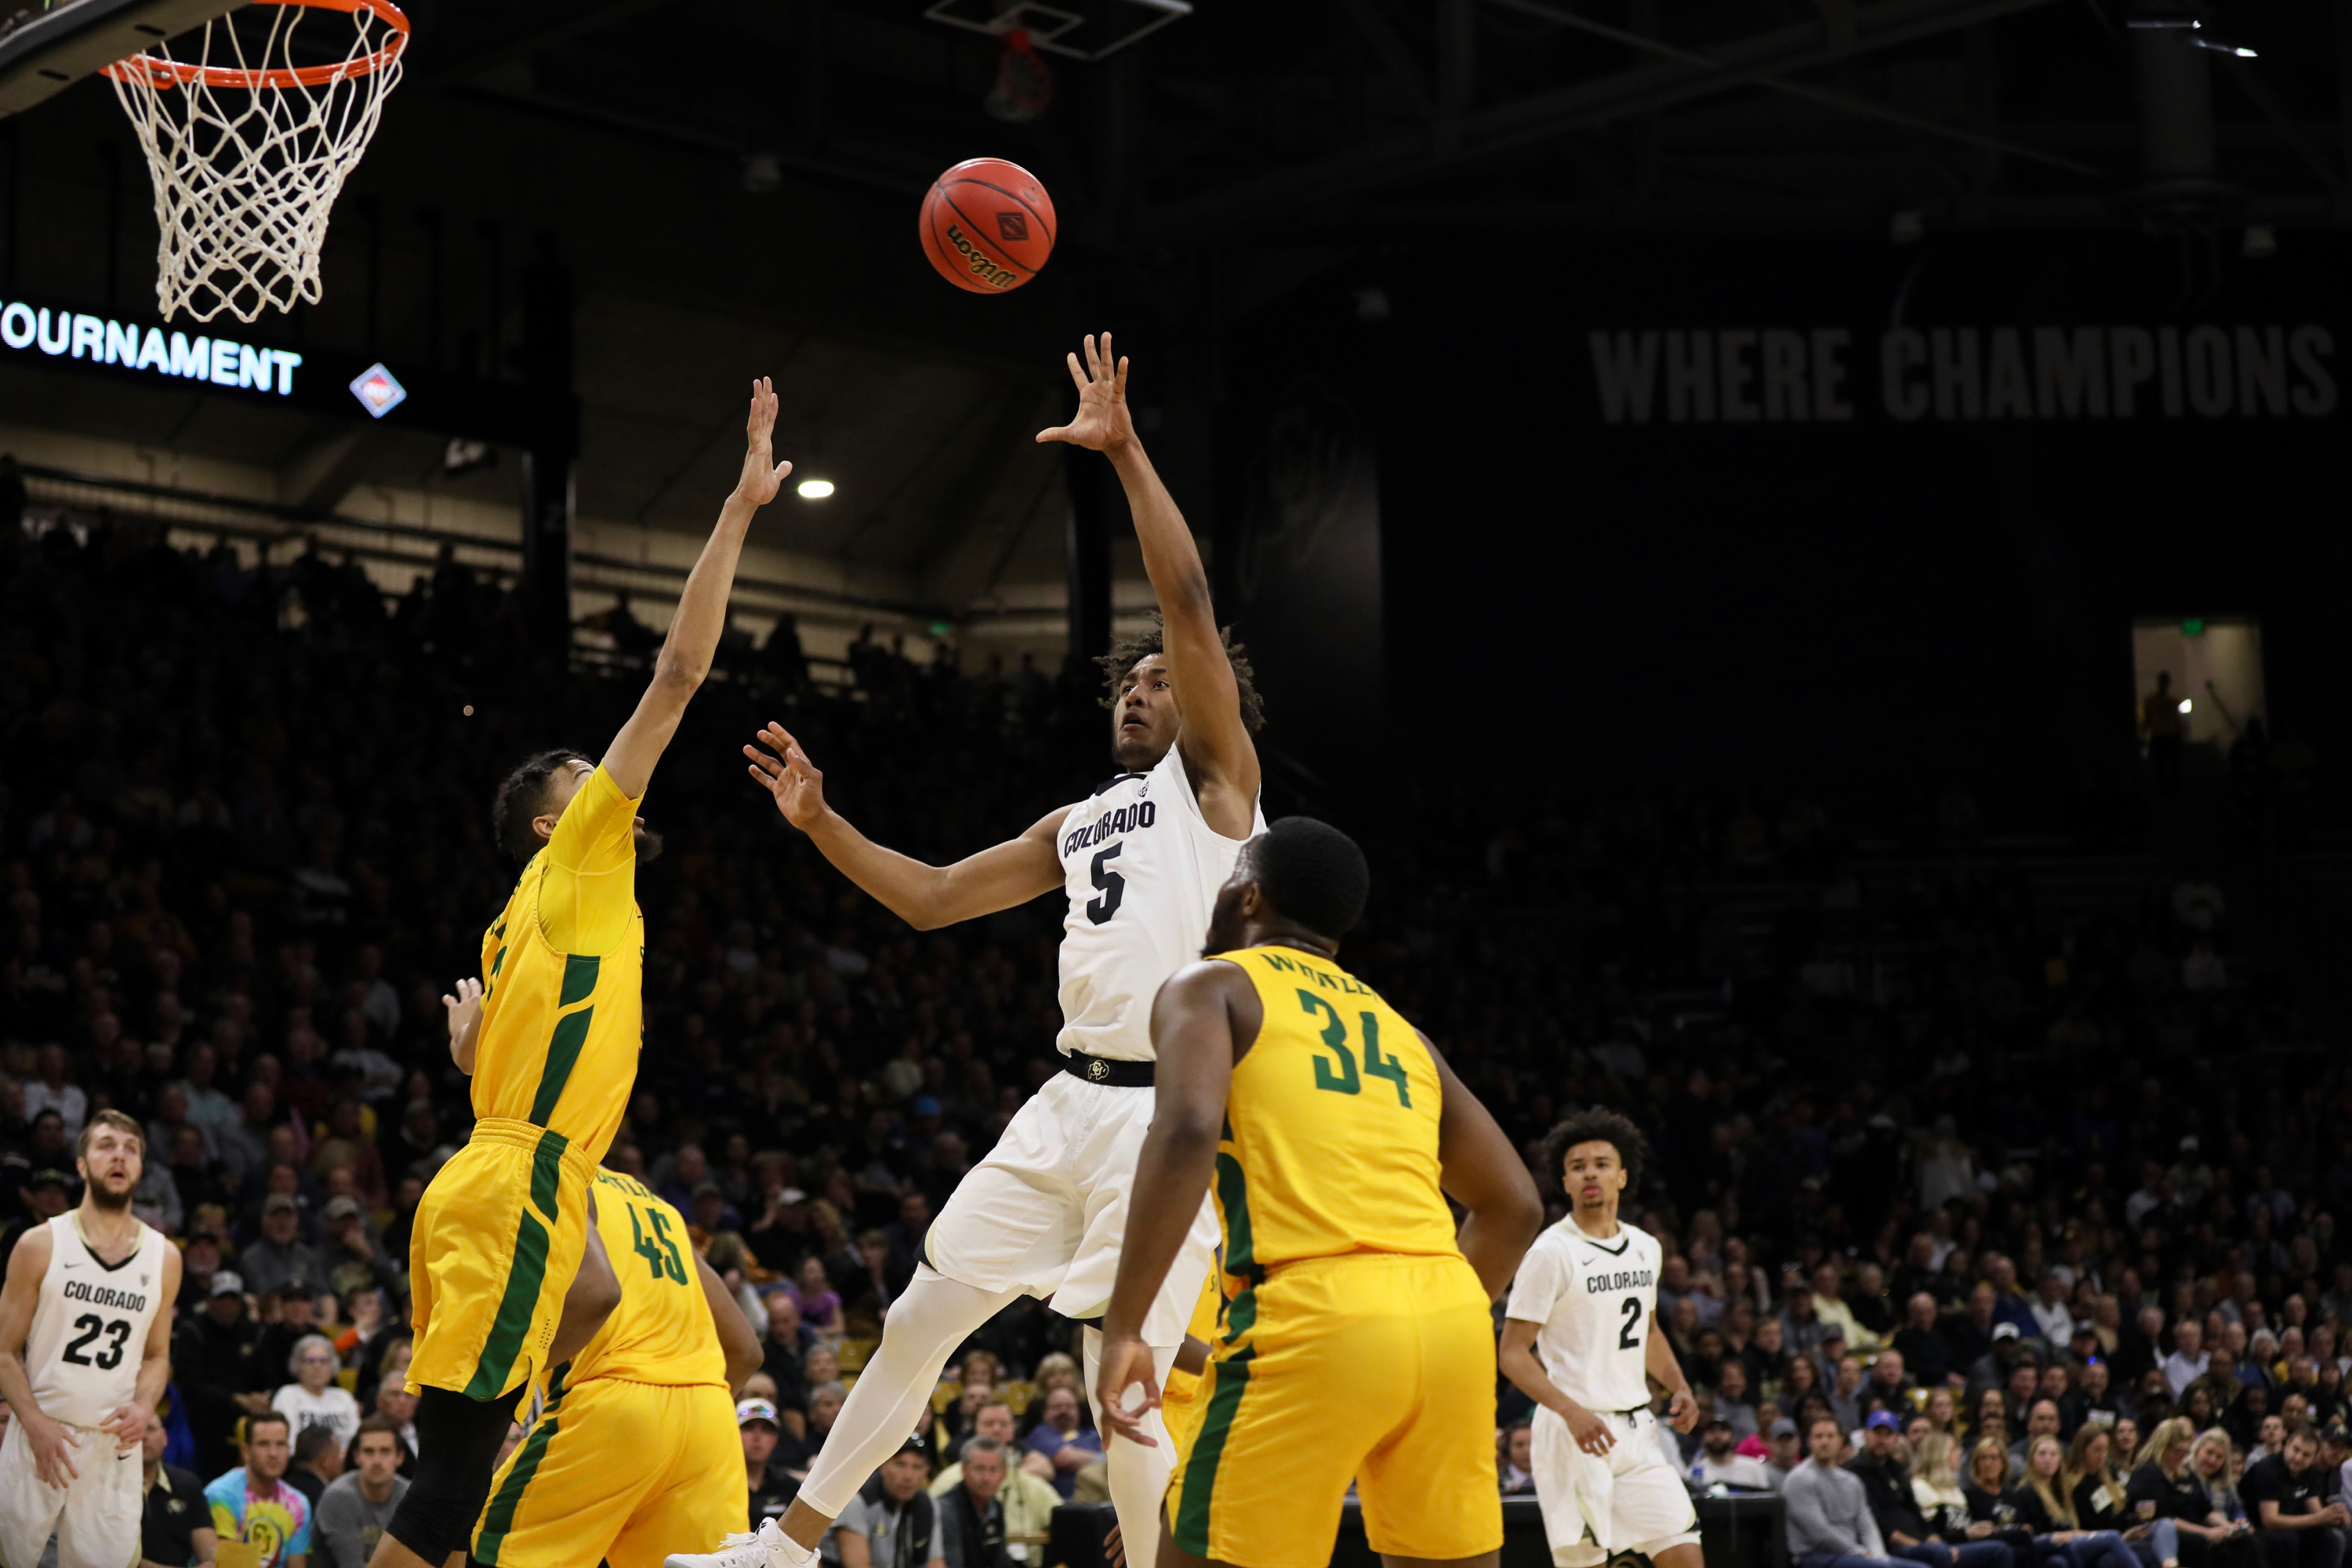 Buffs defeat Norfolk State in second round of NIT, 76-60